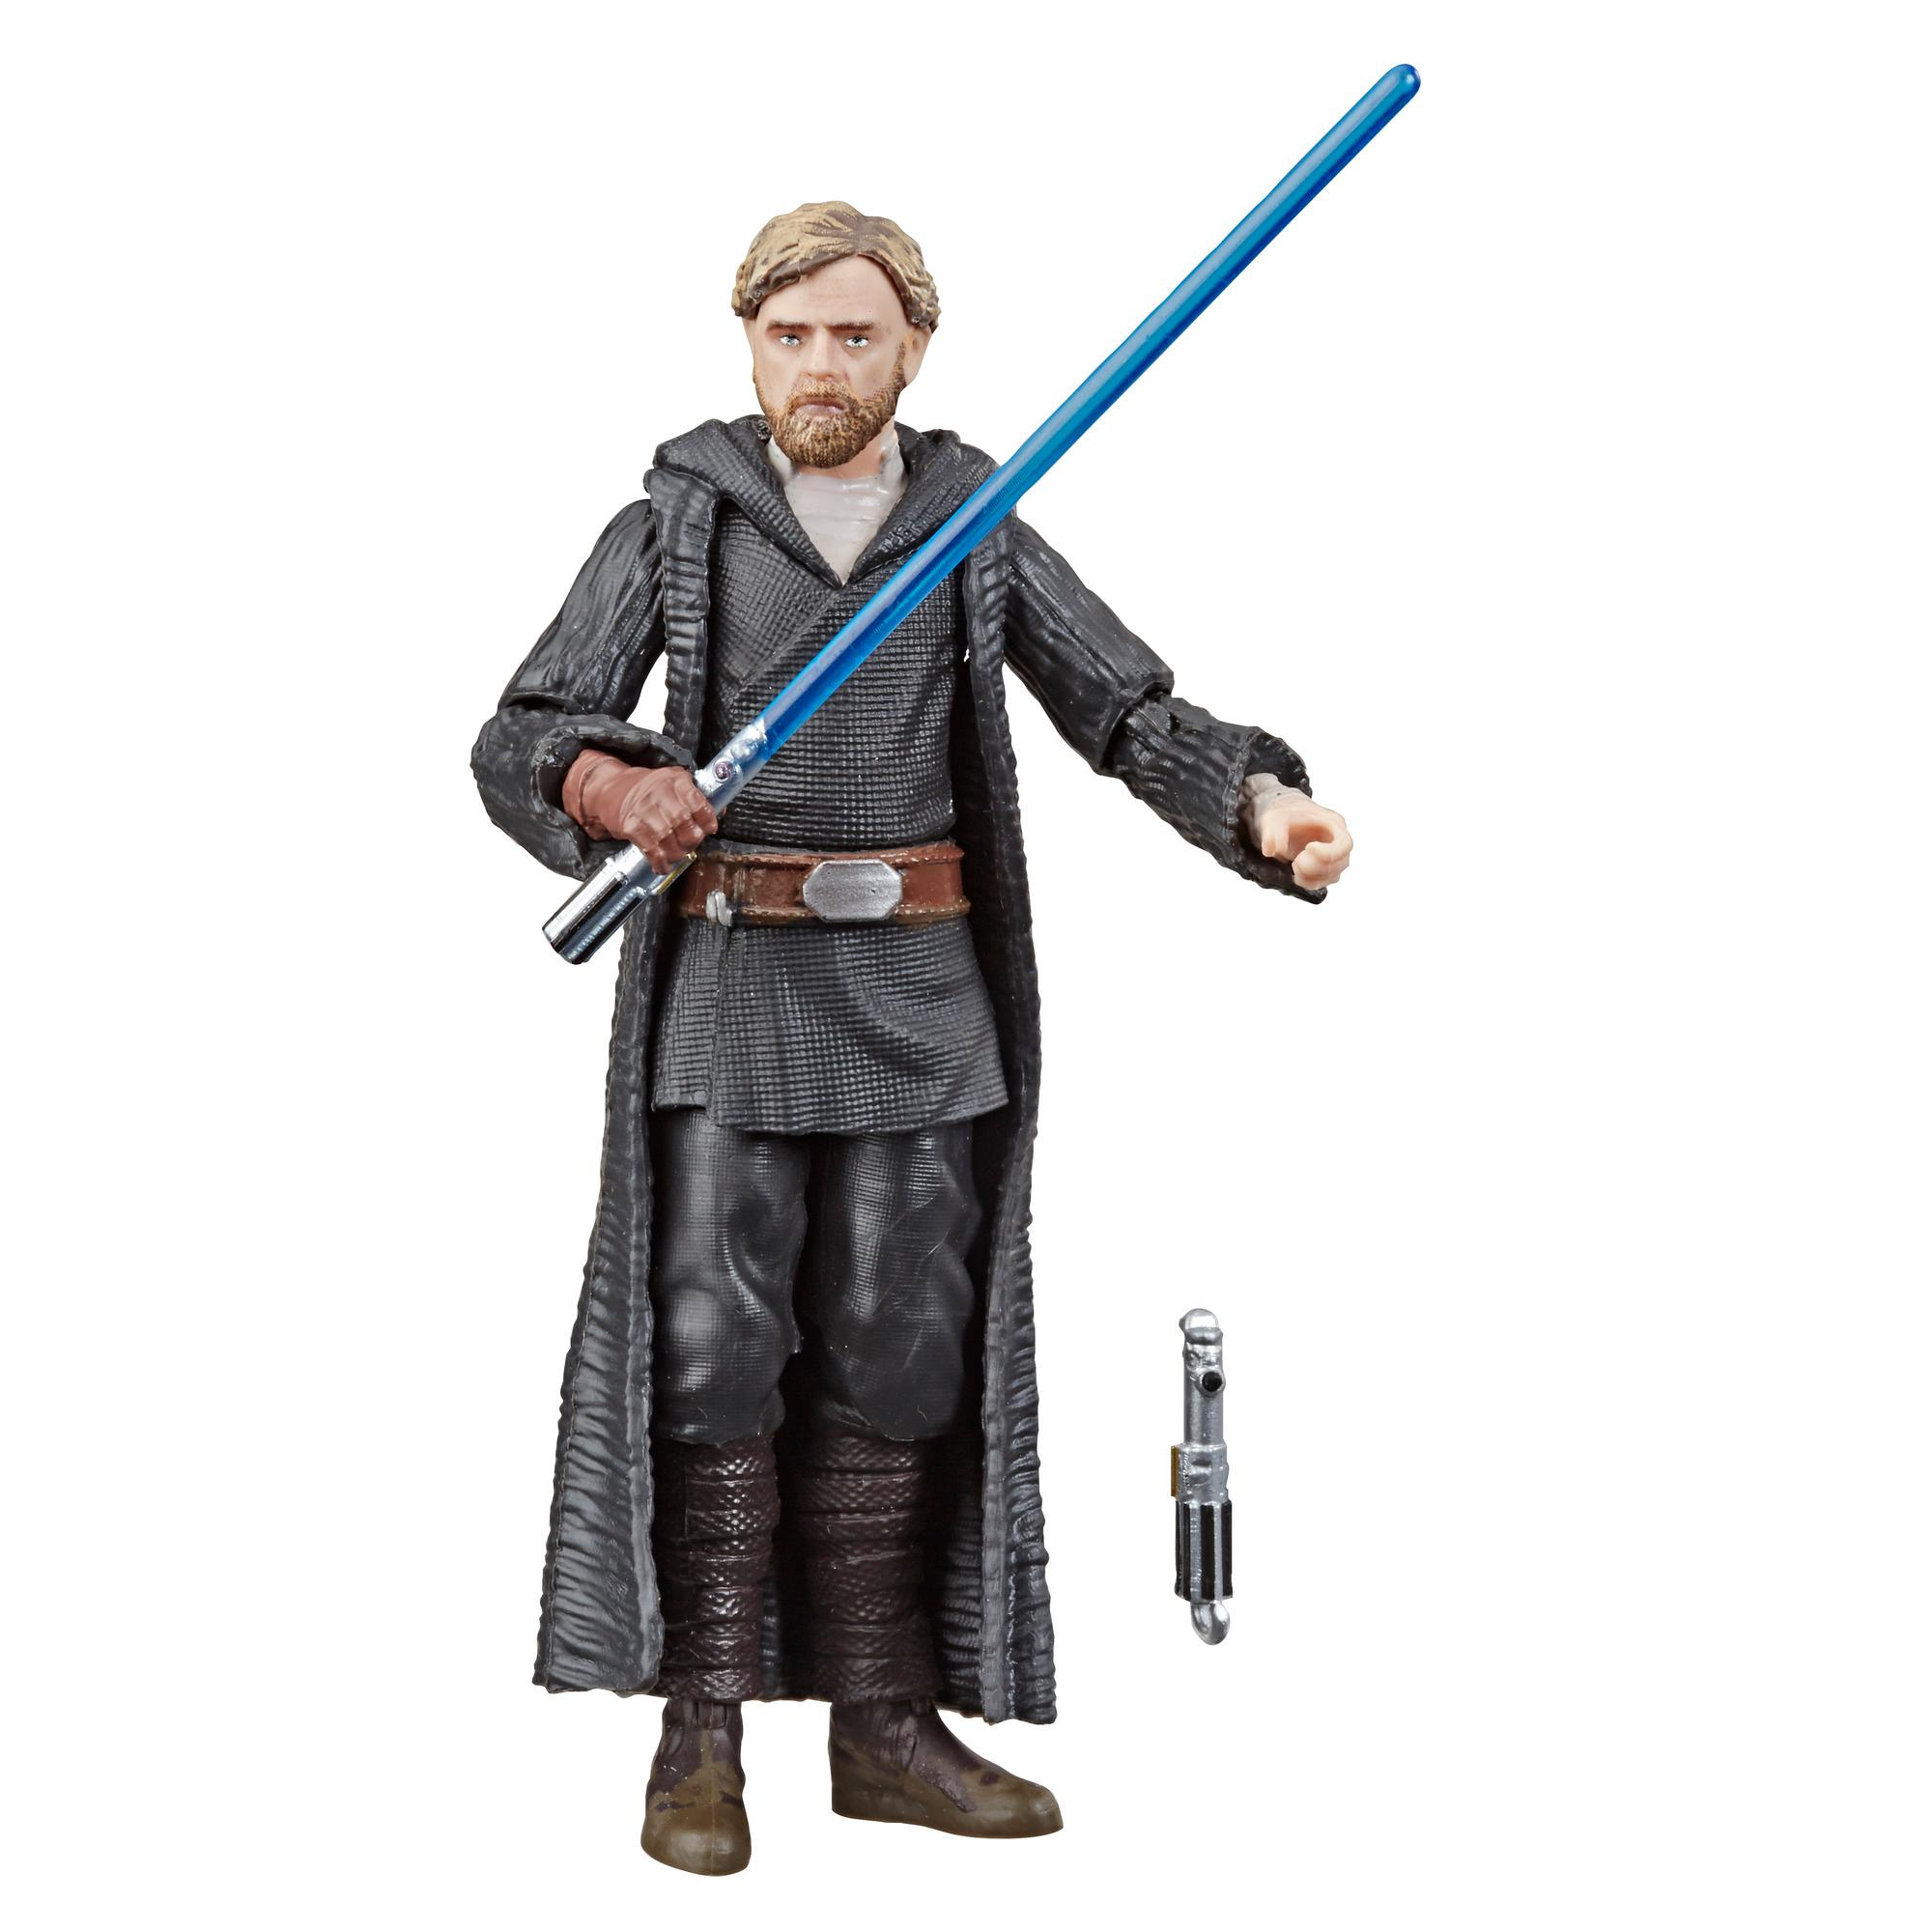 Star Wars The Vintage Collection Episode VIII: The Last Jedi Luke Skywalker (Crait) 3.75-Inch-Scale Action Figure